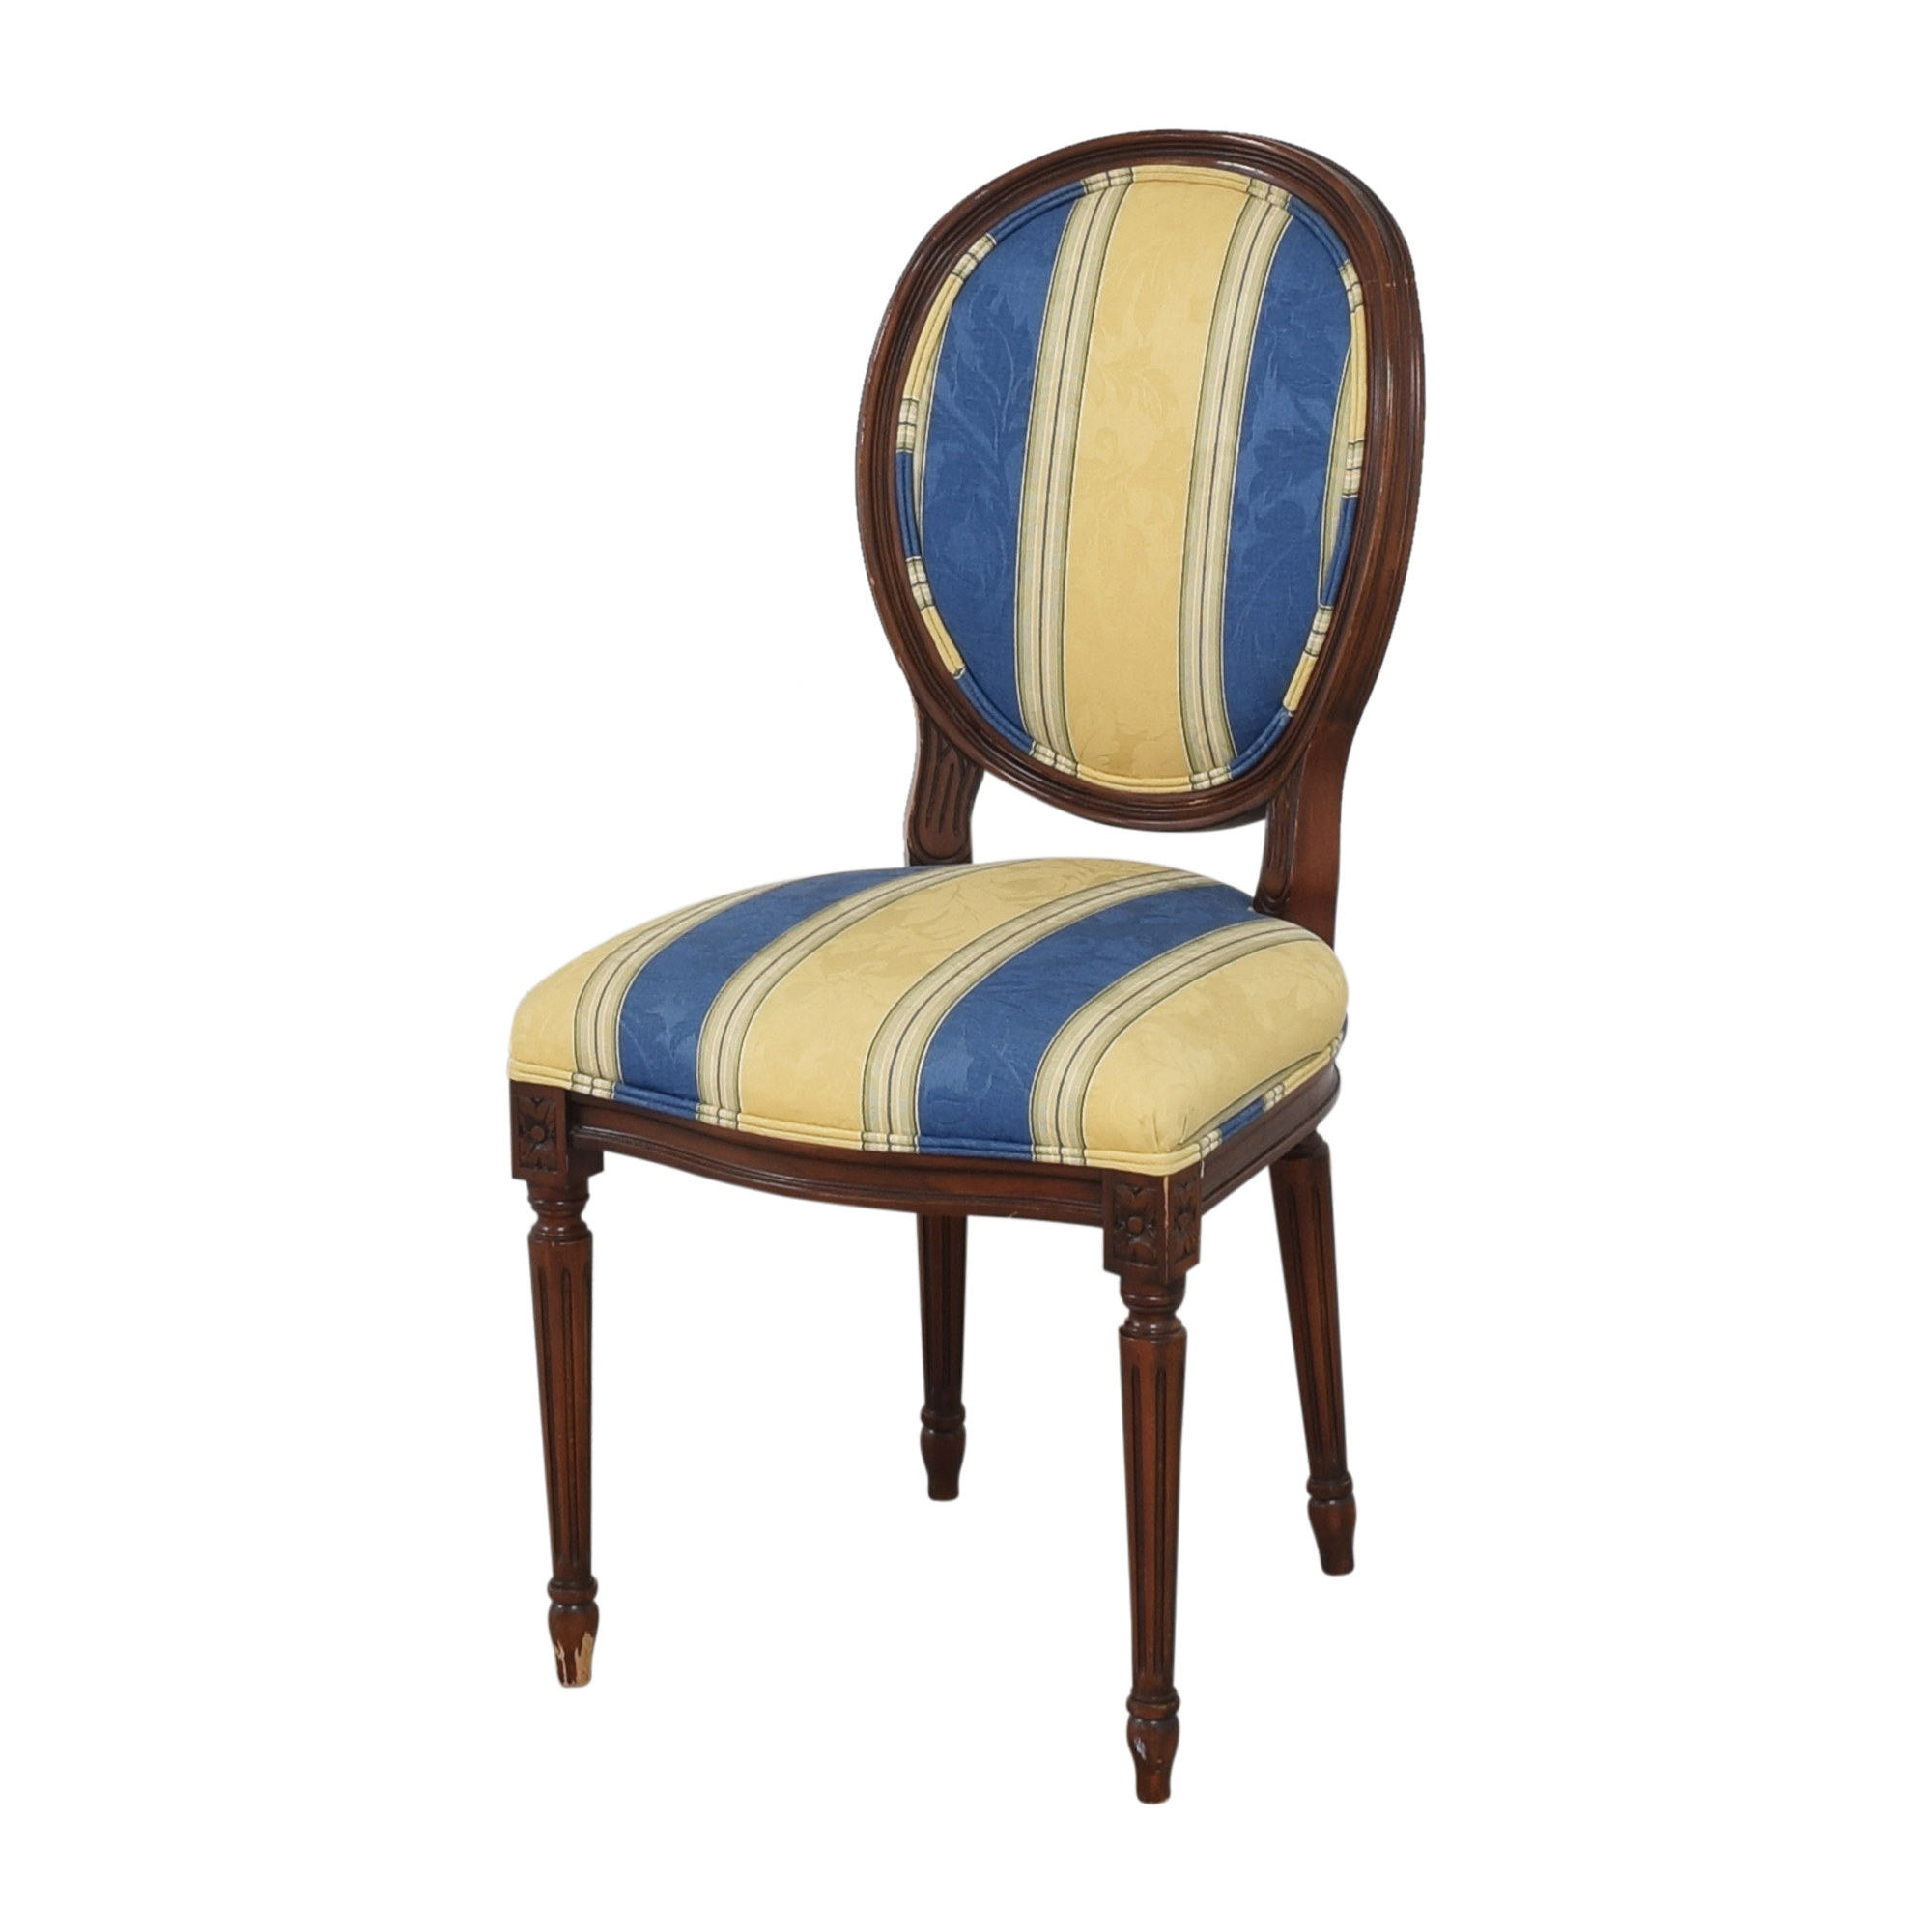 buy Calico Calico Corners Striped Round Back Dining Side Chairs online